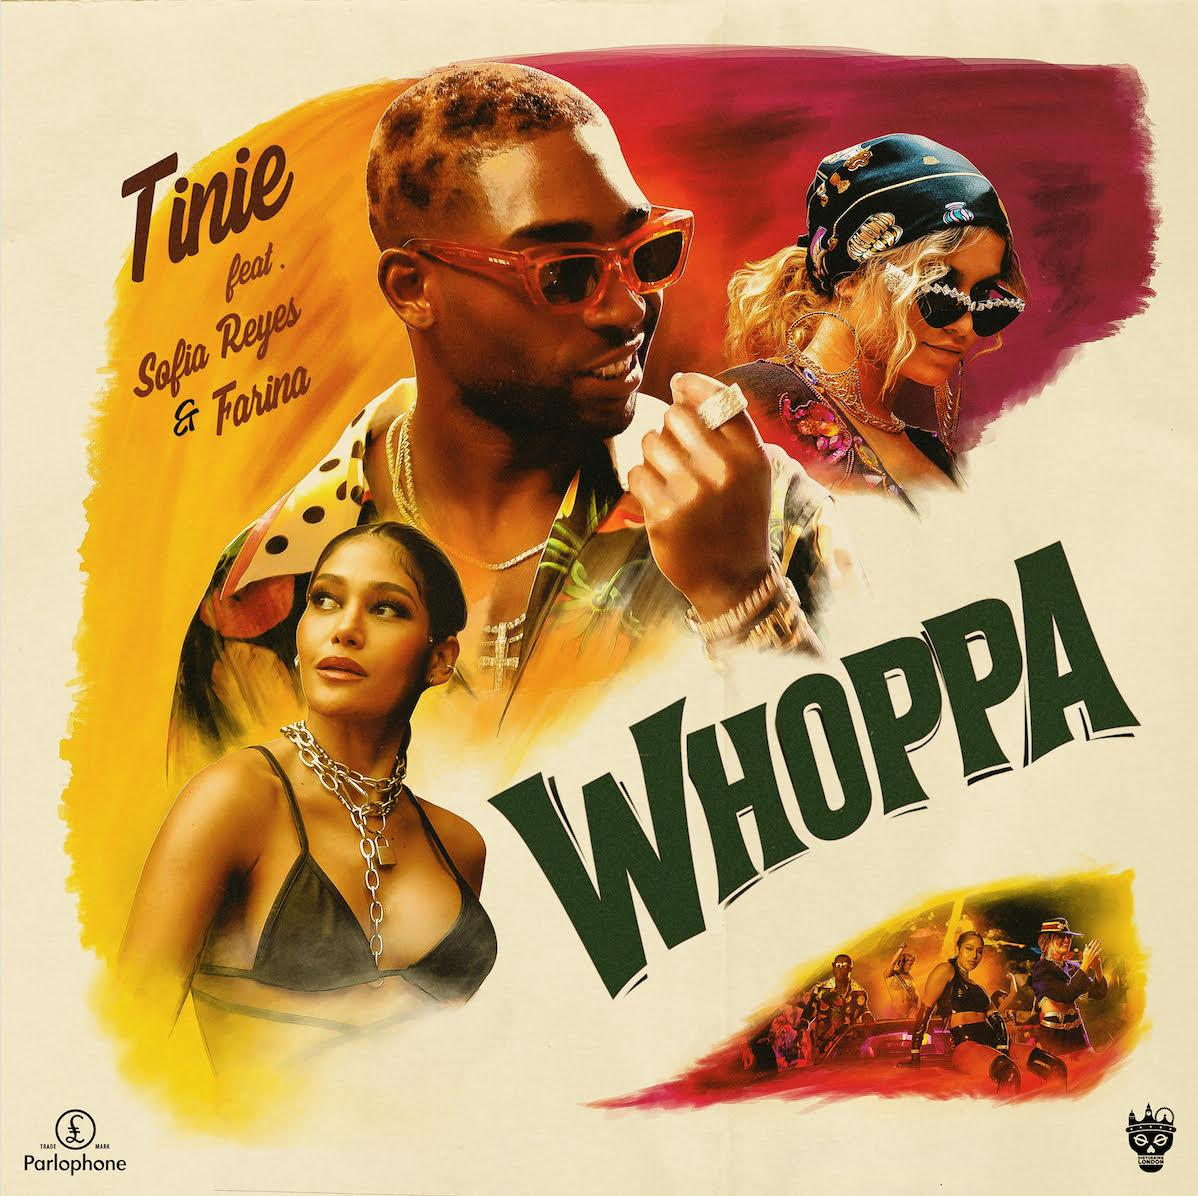 Tinie - Whoppa (feat. Sofia Reyes and Farina) [Official Video]